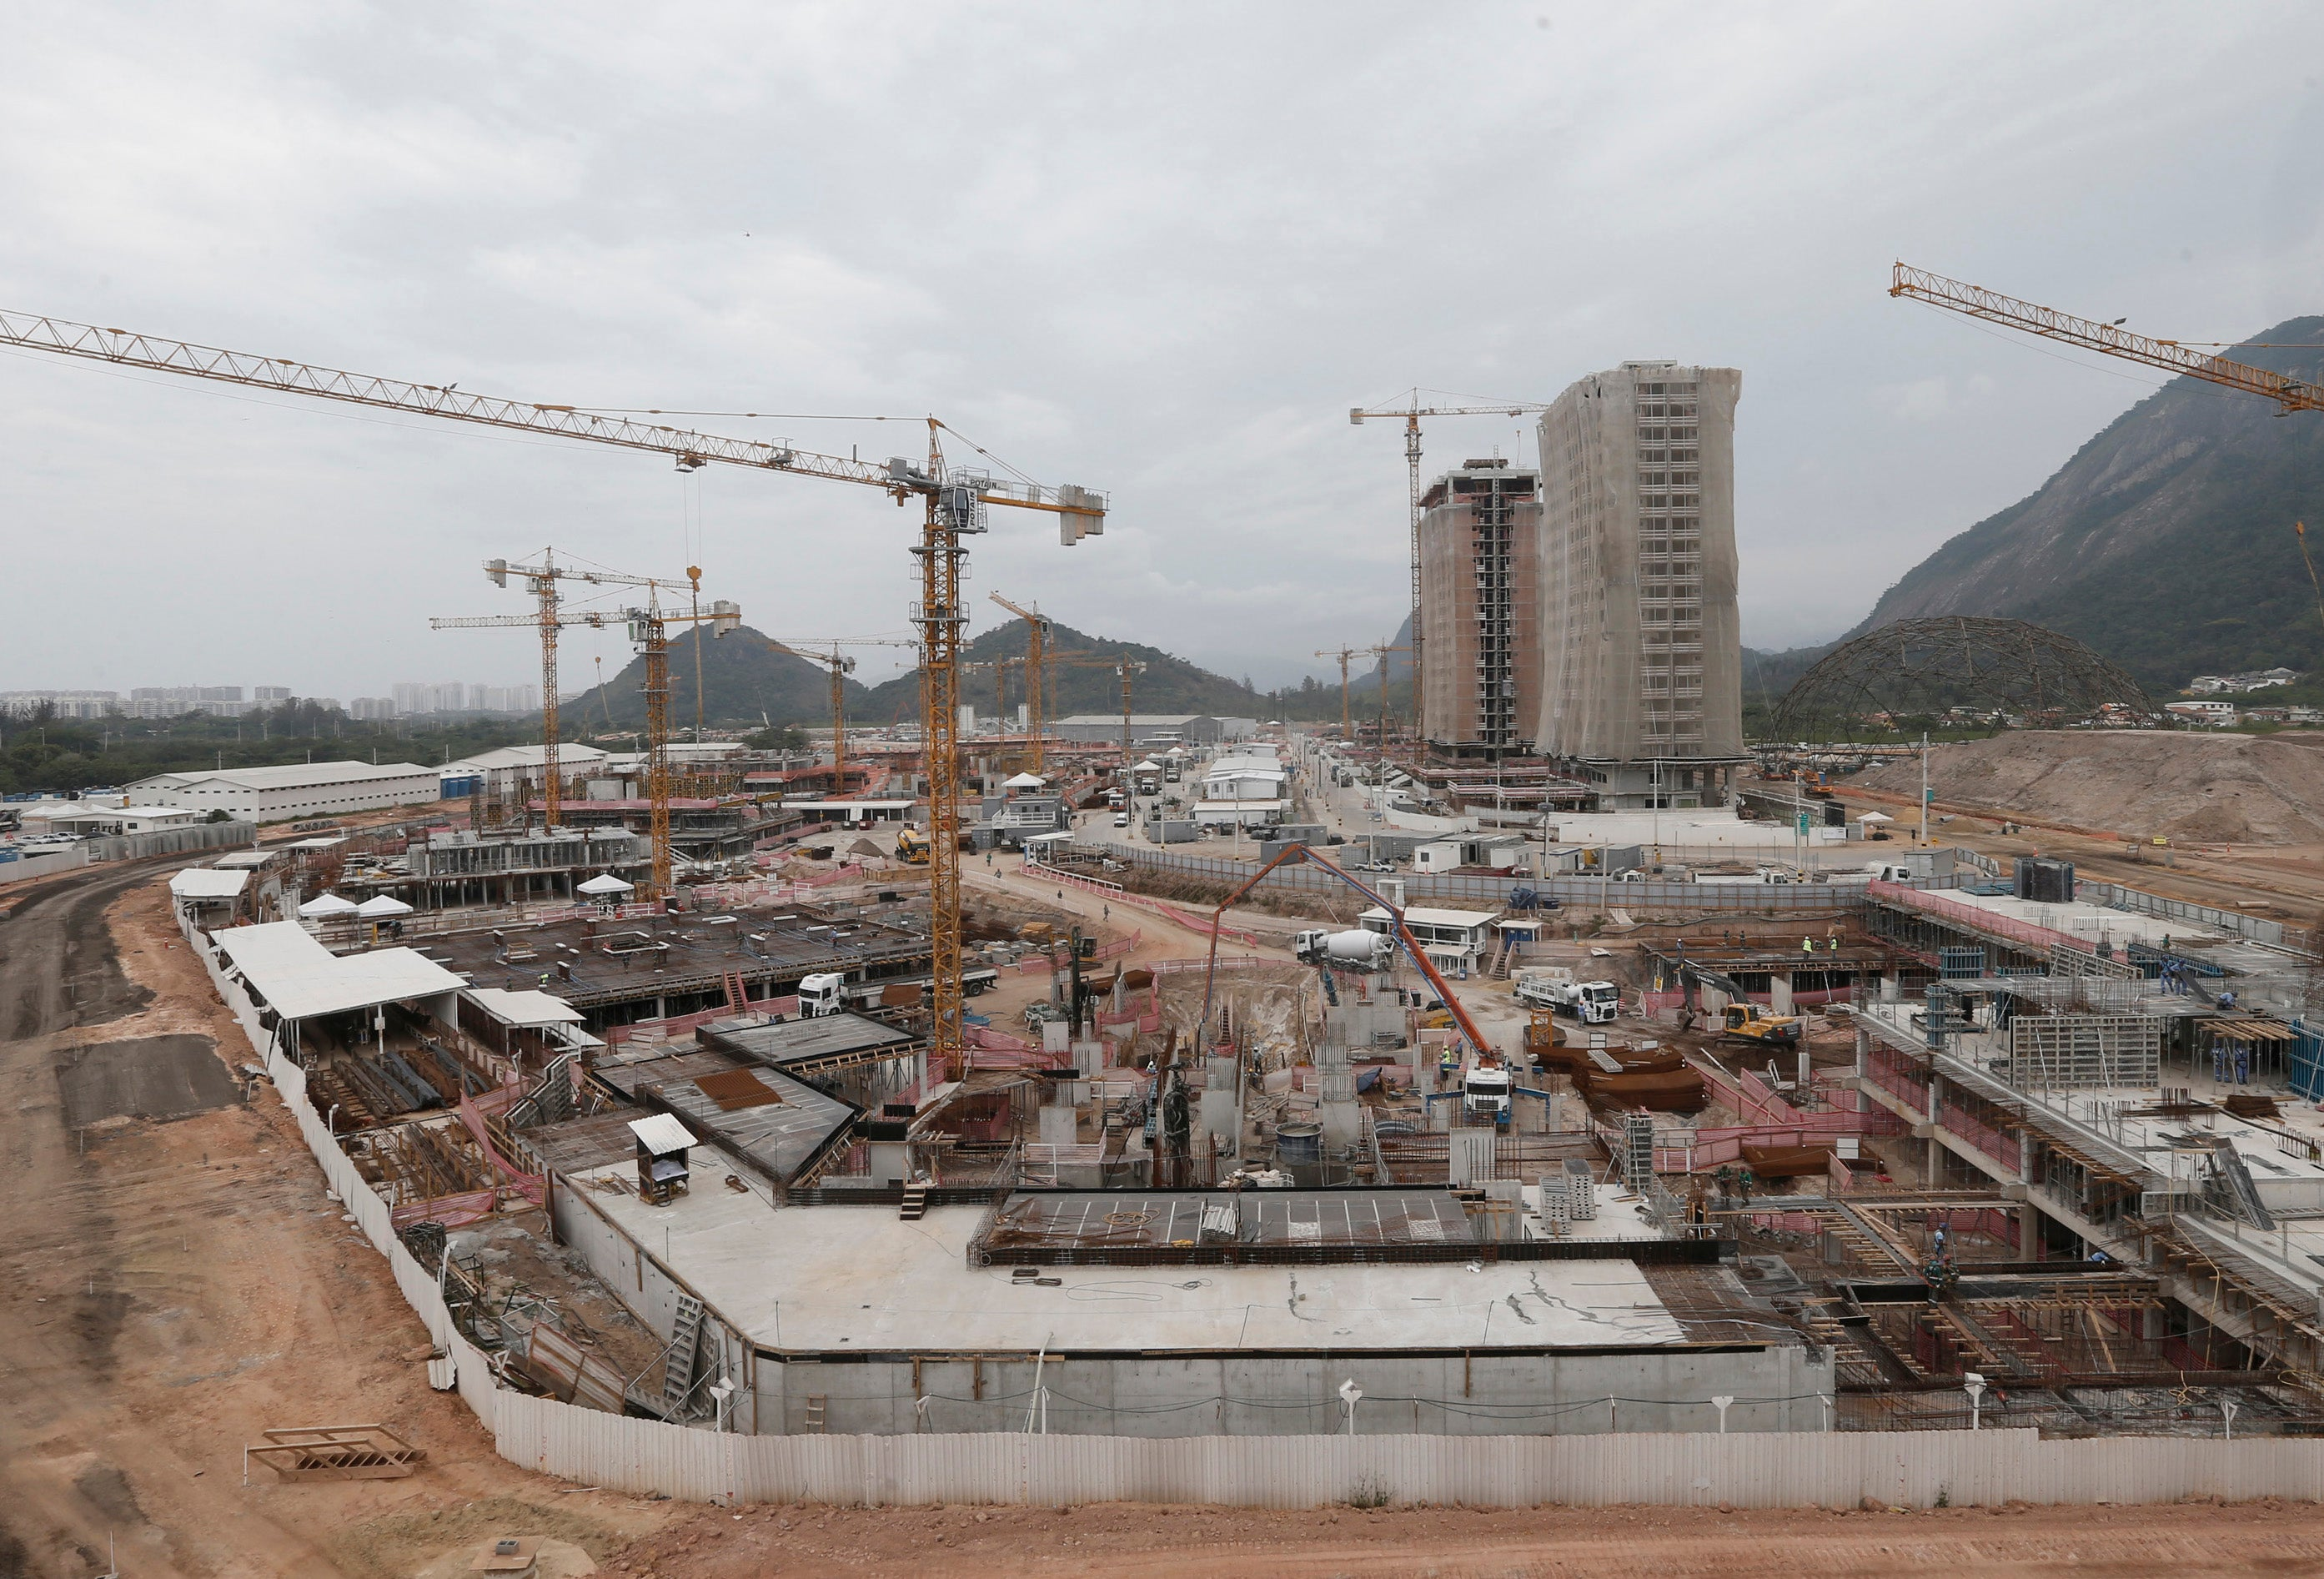 Rio's Olympic Construction Crews Are Unearthing Its Slave Trade Past